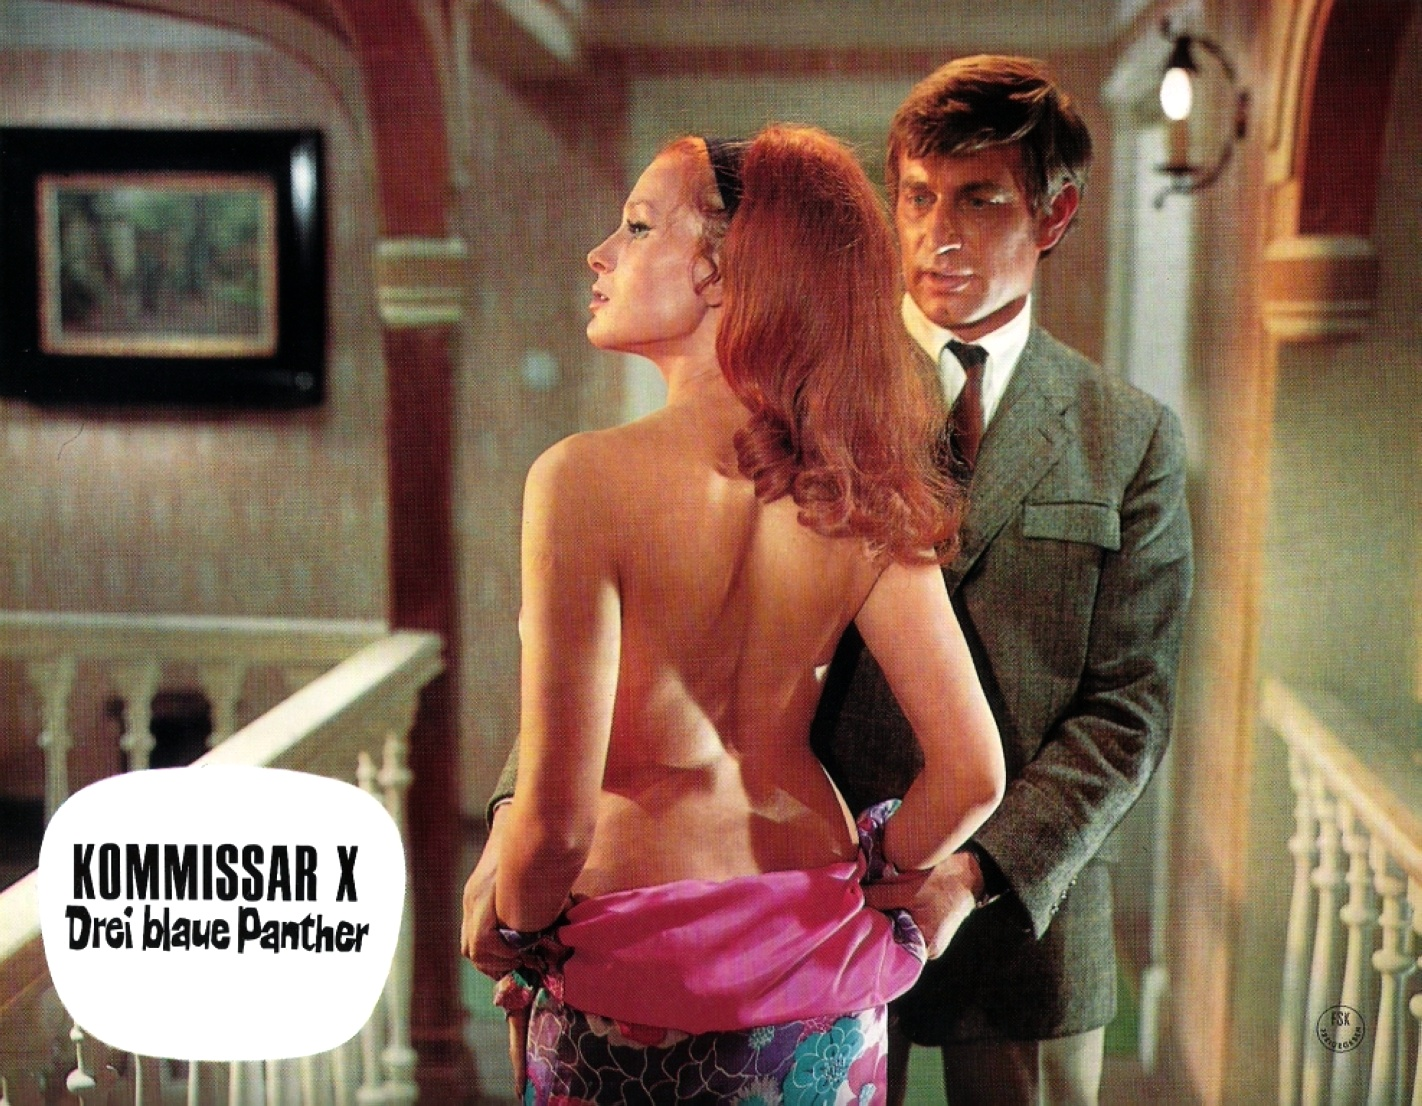 Erika Blanc and Tony Kendall in Kommissar X - Drei blaue Panther (1968)